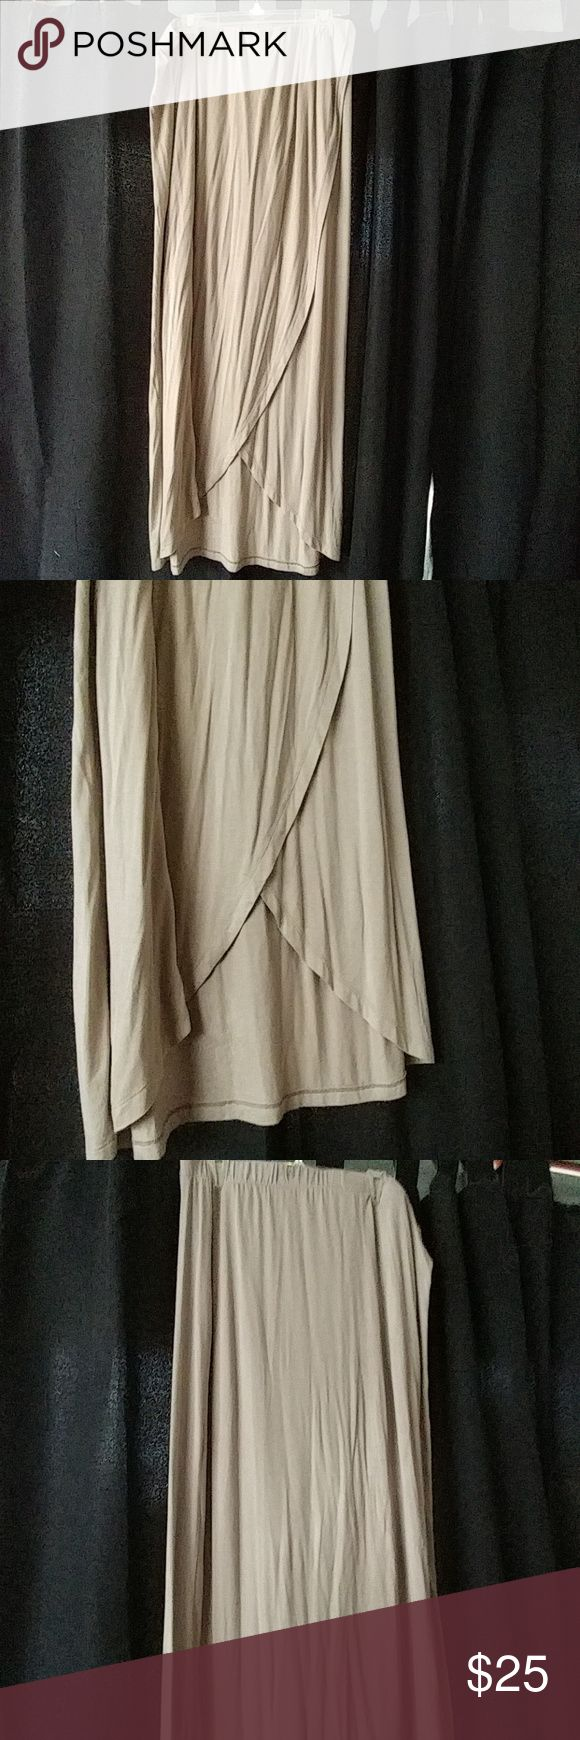 Tan maxi skirt Tan maxi skirt. Only worn once. Cute slit in the front Apt. 9 Dresses Maxi